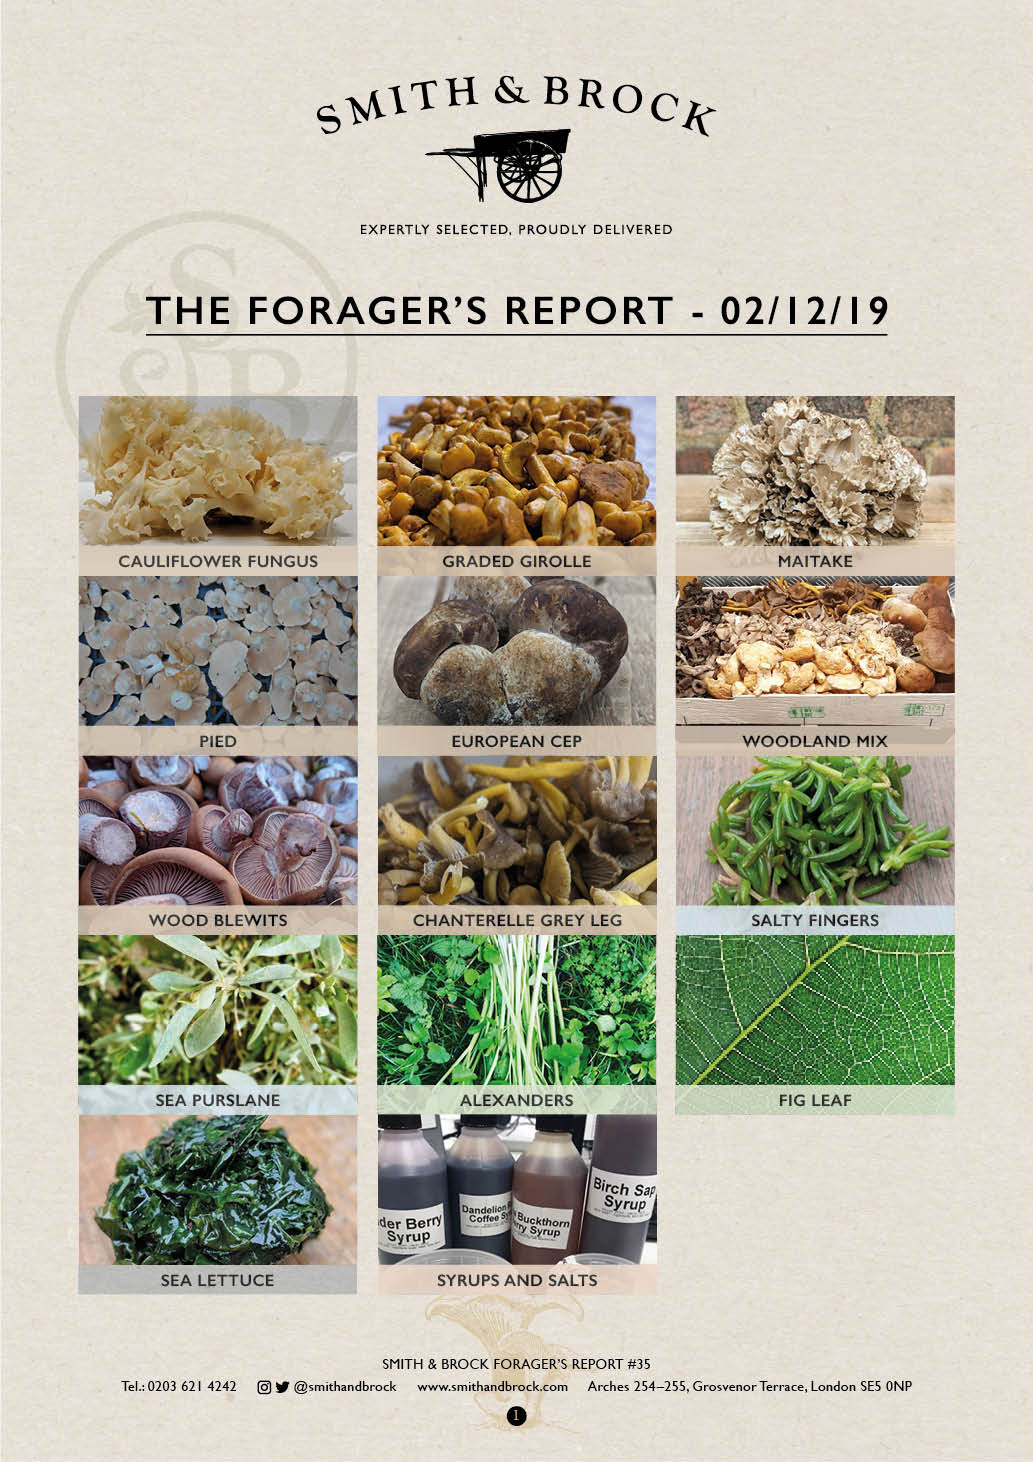 Smith&Brock Foraged Products Report 02 Dec 2019 35